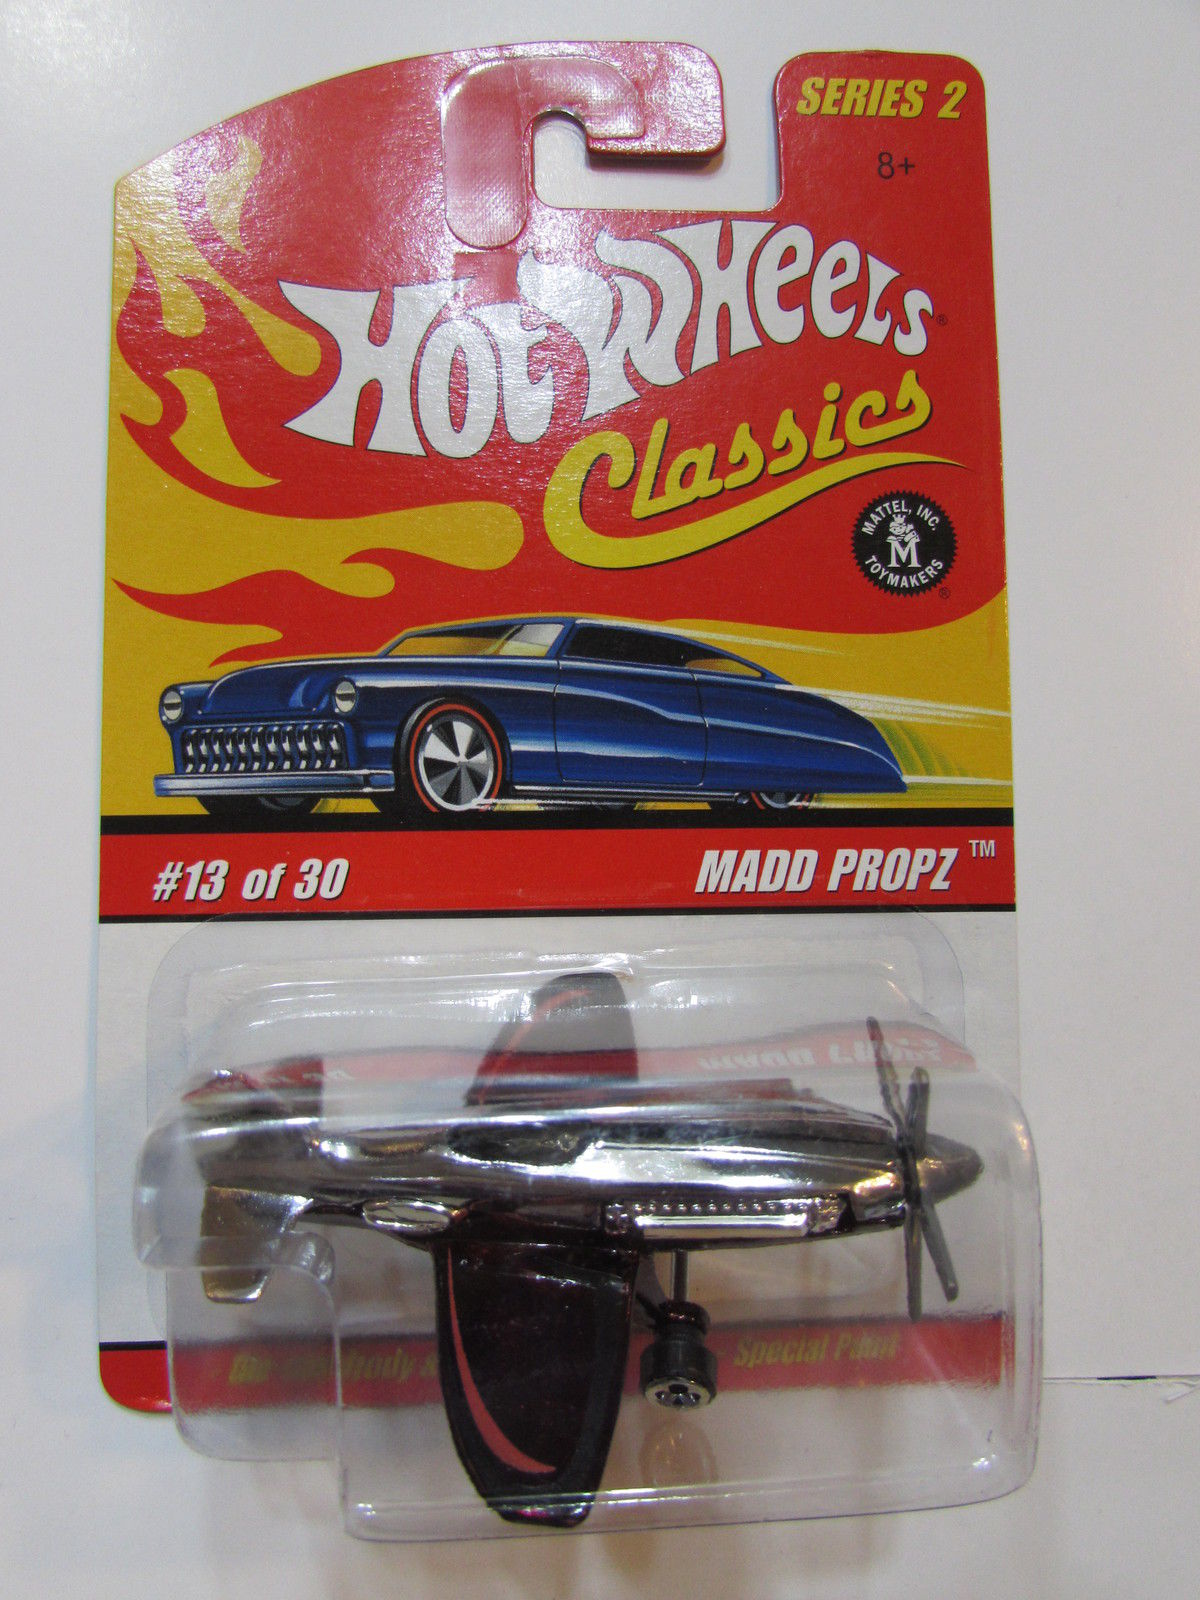 HOT WHEELS CLASSICS SERIES 2 #13/30 MADD PROPZ RED